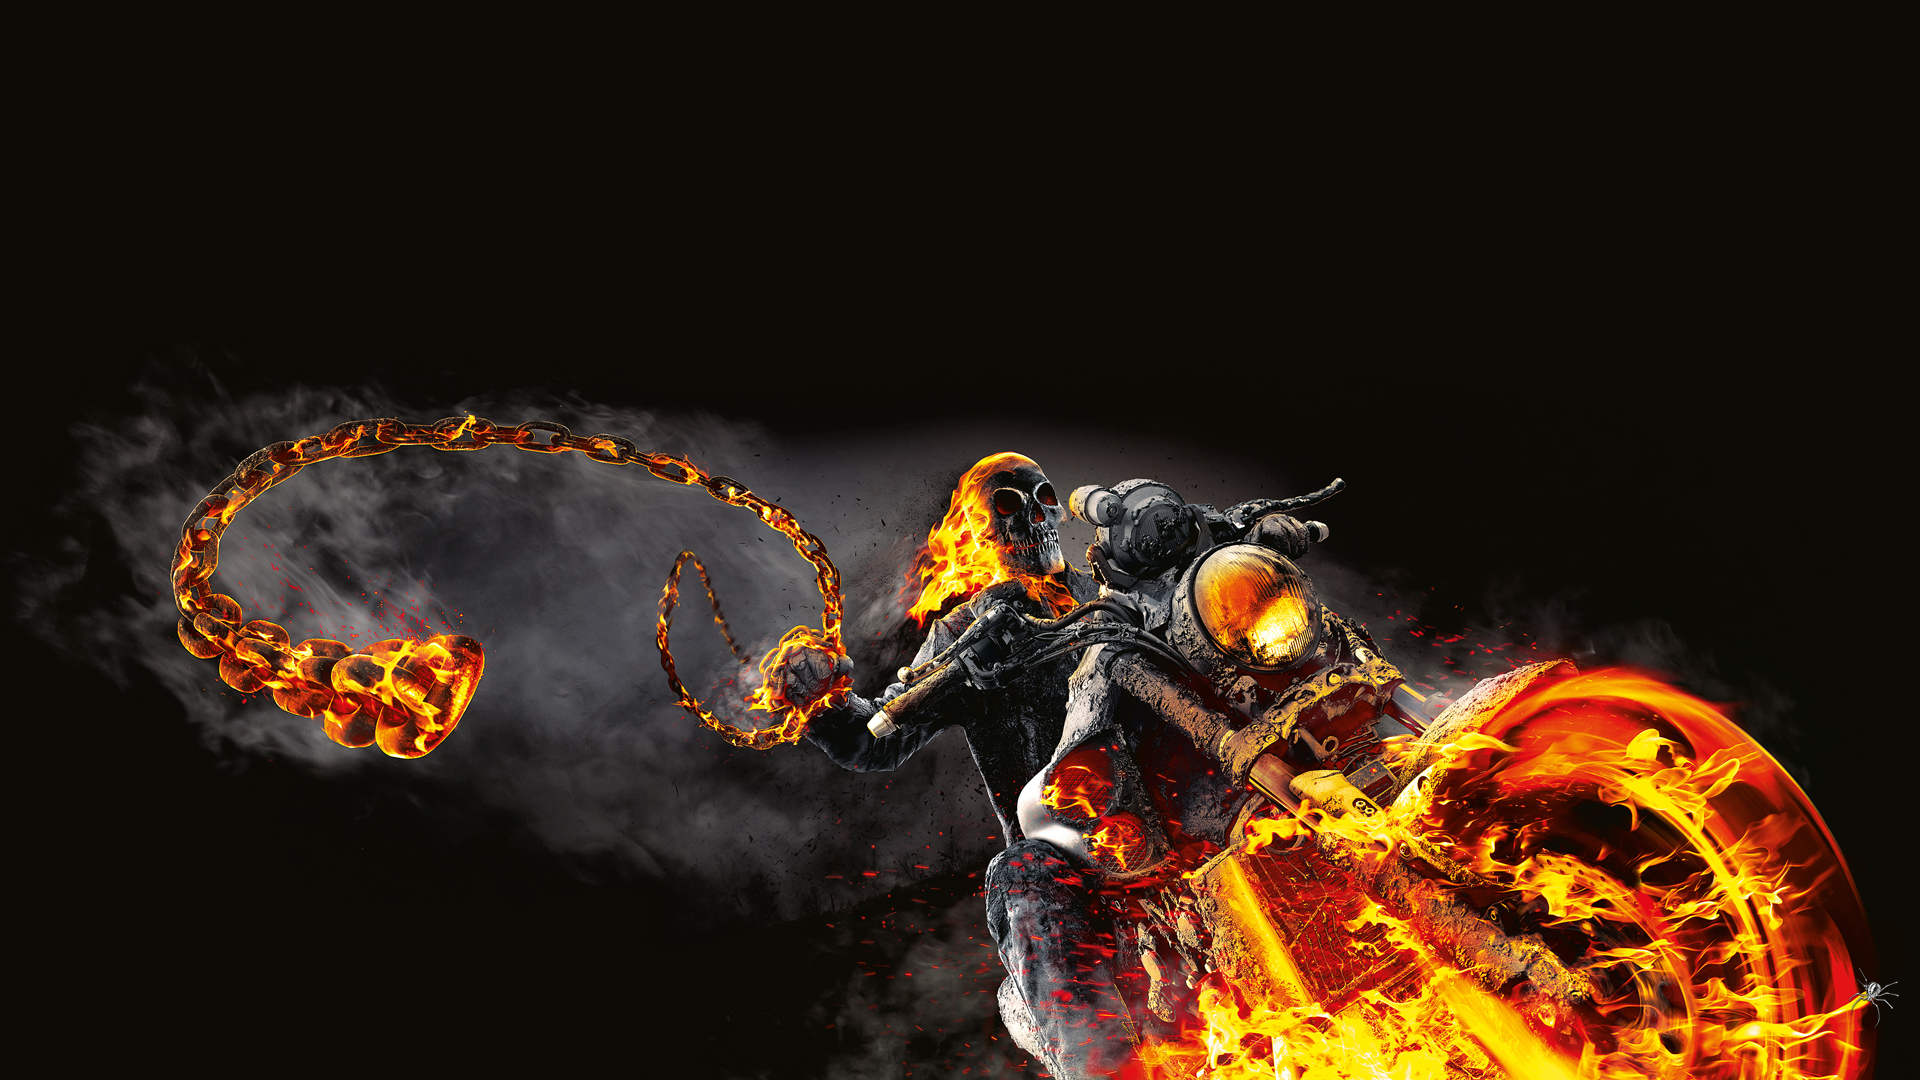 ghost rider images and wallpapers wallpapersafari